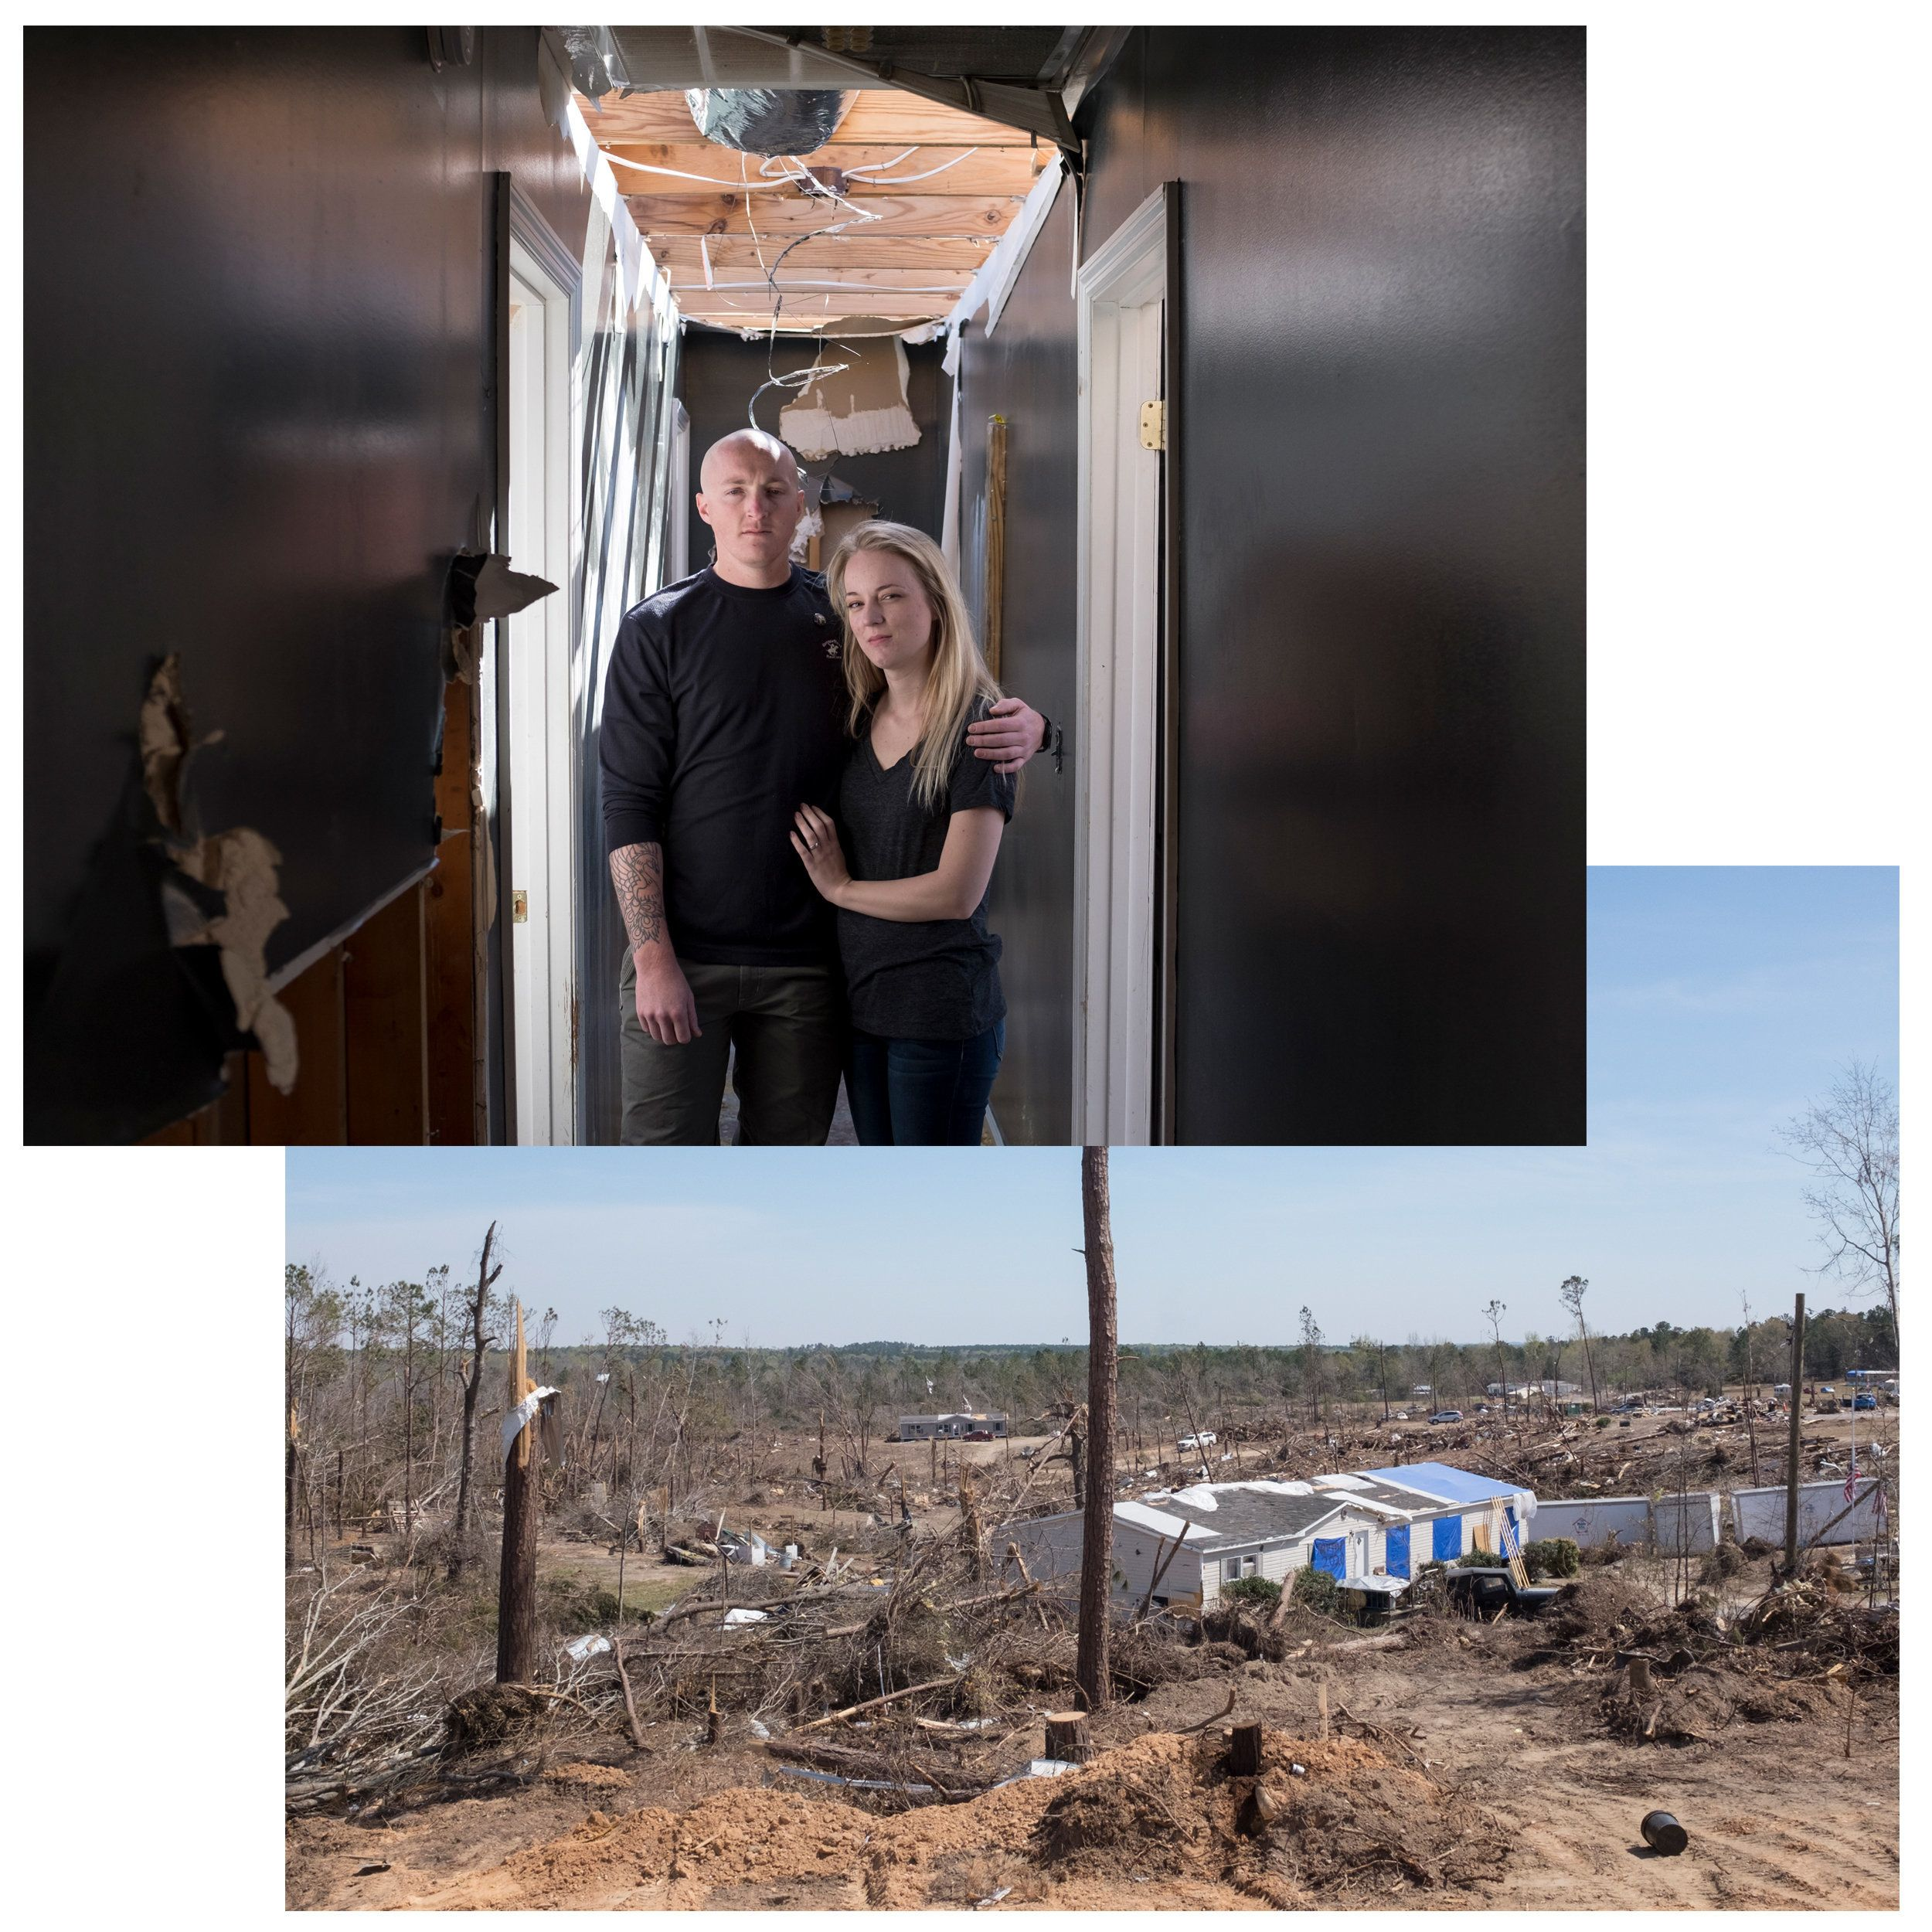 (Top) Chance Norton and her fiance, Phillip Bell. (Bottom) The view overlooking the community along Lee Road 38 in easte